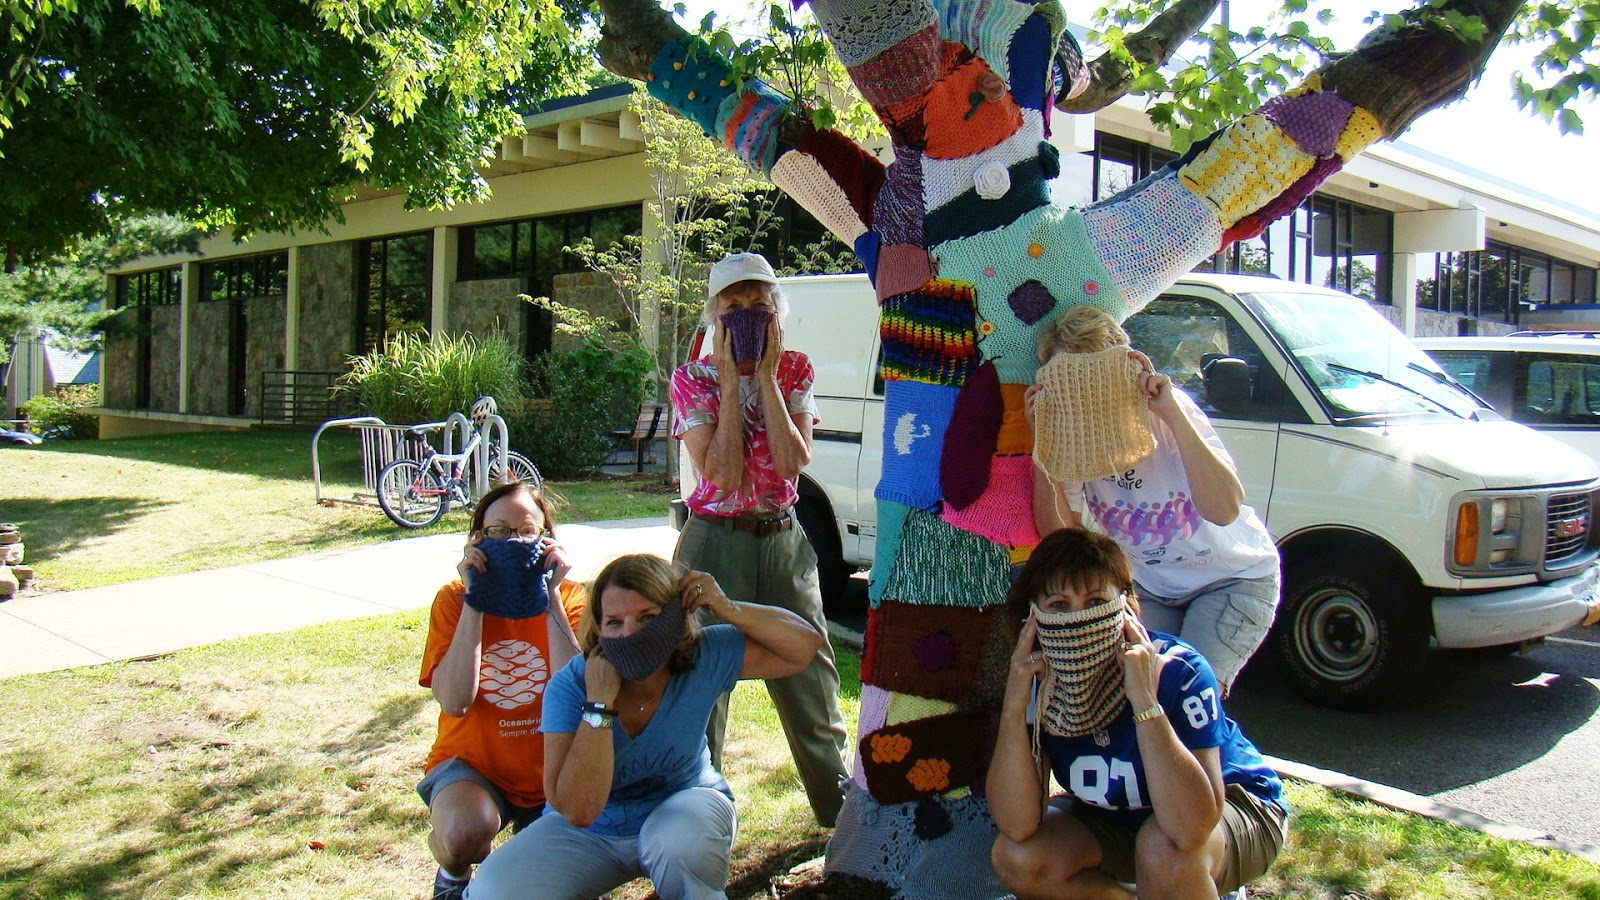 A group of women group around a tree that has been yarnbombed, covered with pieces of knitting. The women's faces are partially concealed by the colorful knitted swatches that they hold over their noses and mouths.